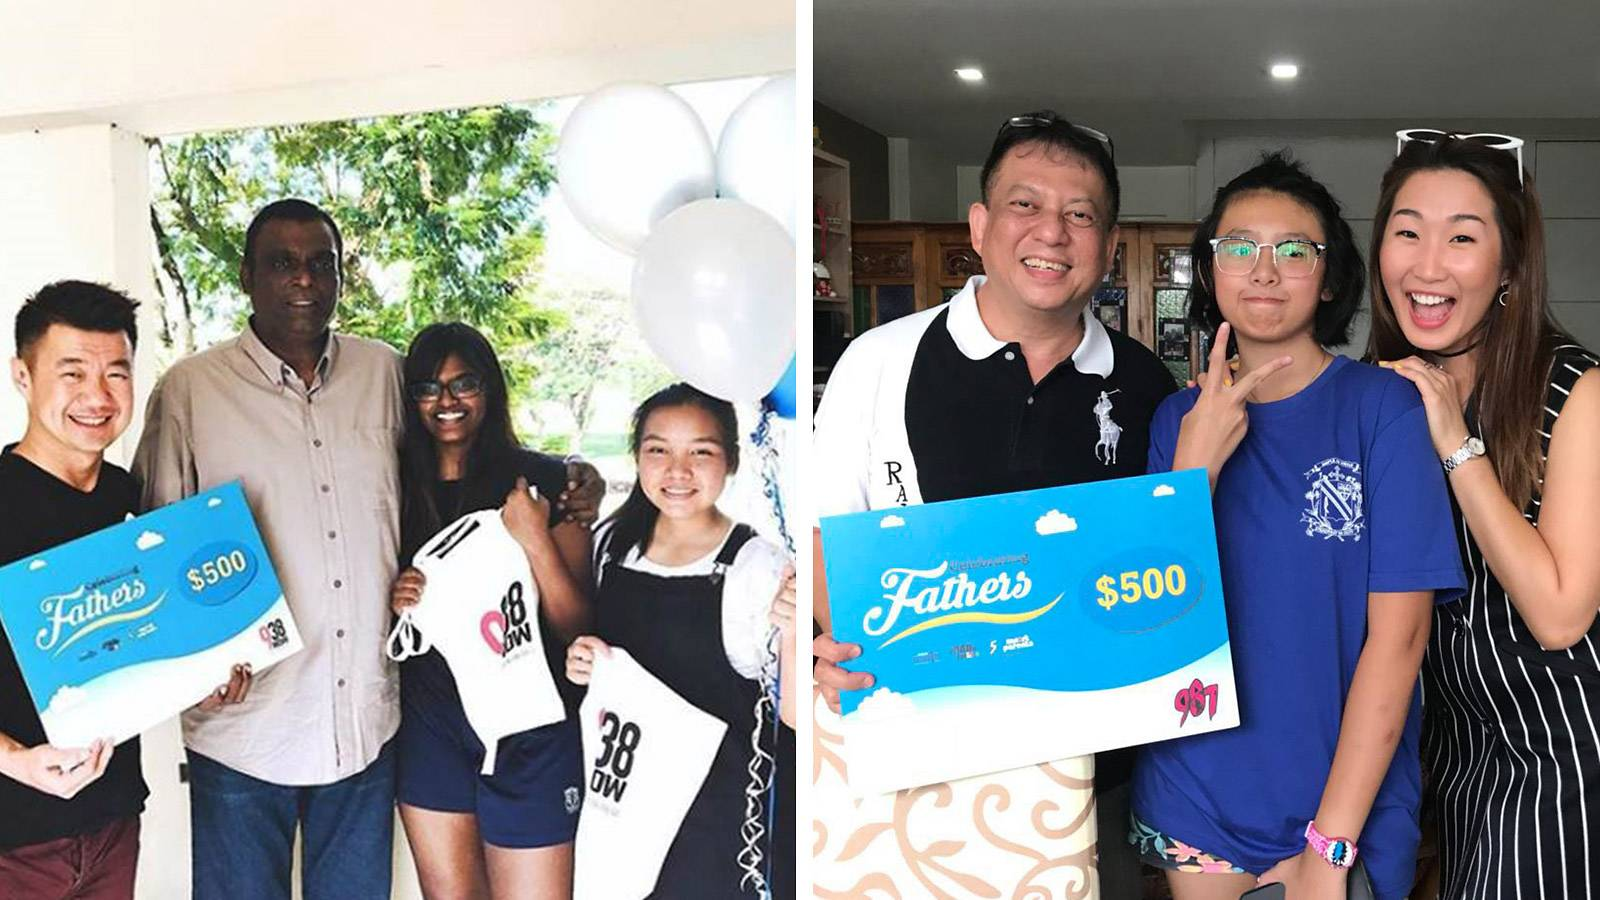 $500 Surprise for 2 Lucky Dads ahead of Father's Day